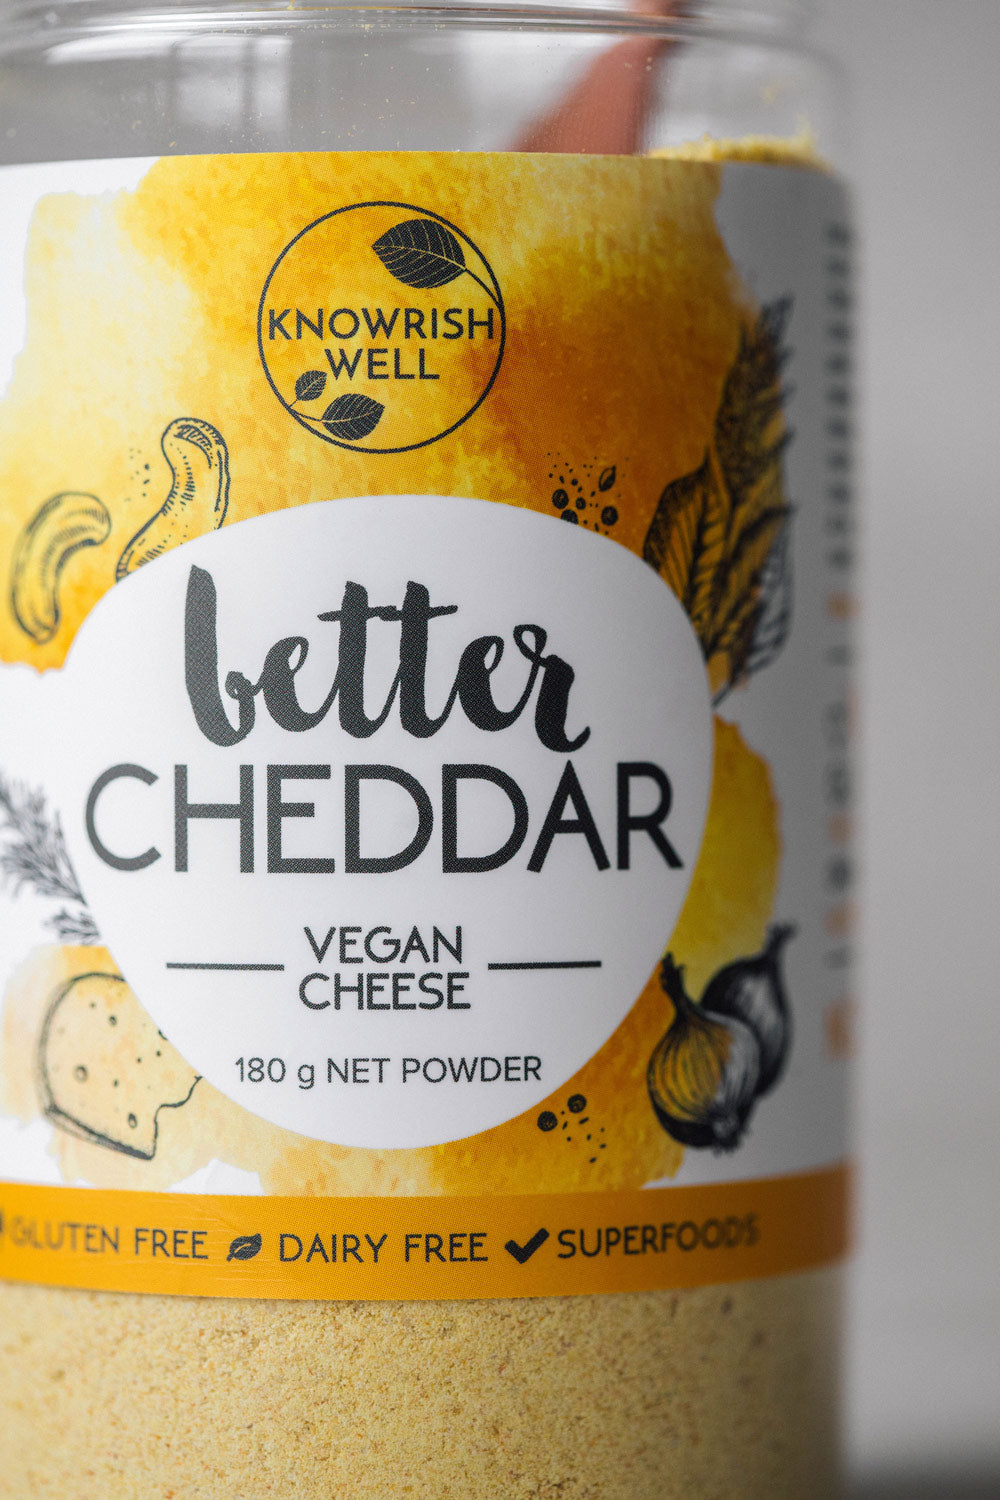 Knowrish Well Better Cheddar vegan cheese powder